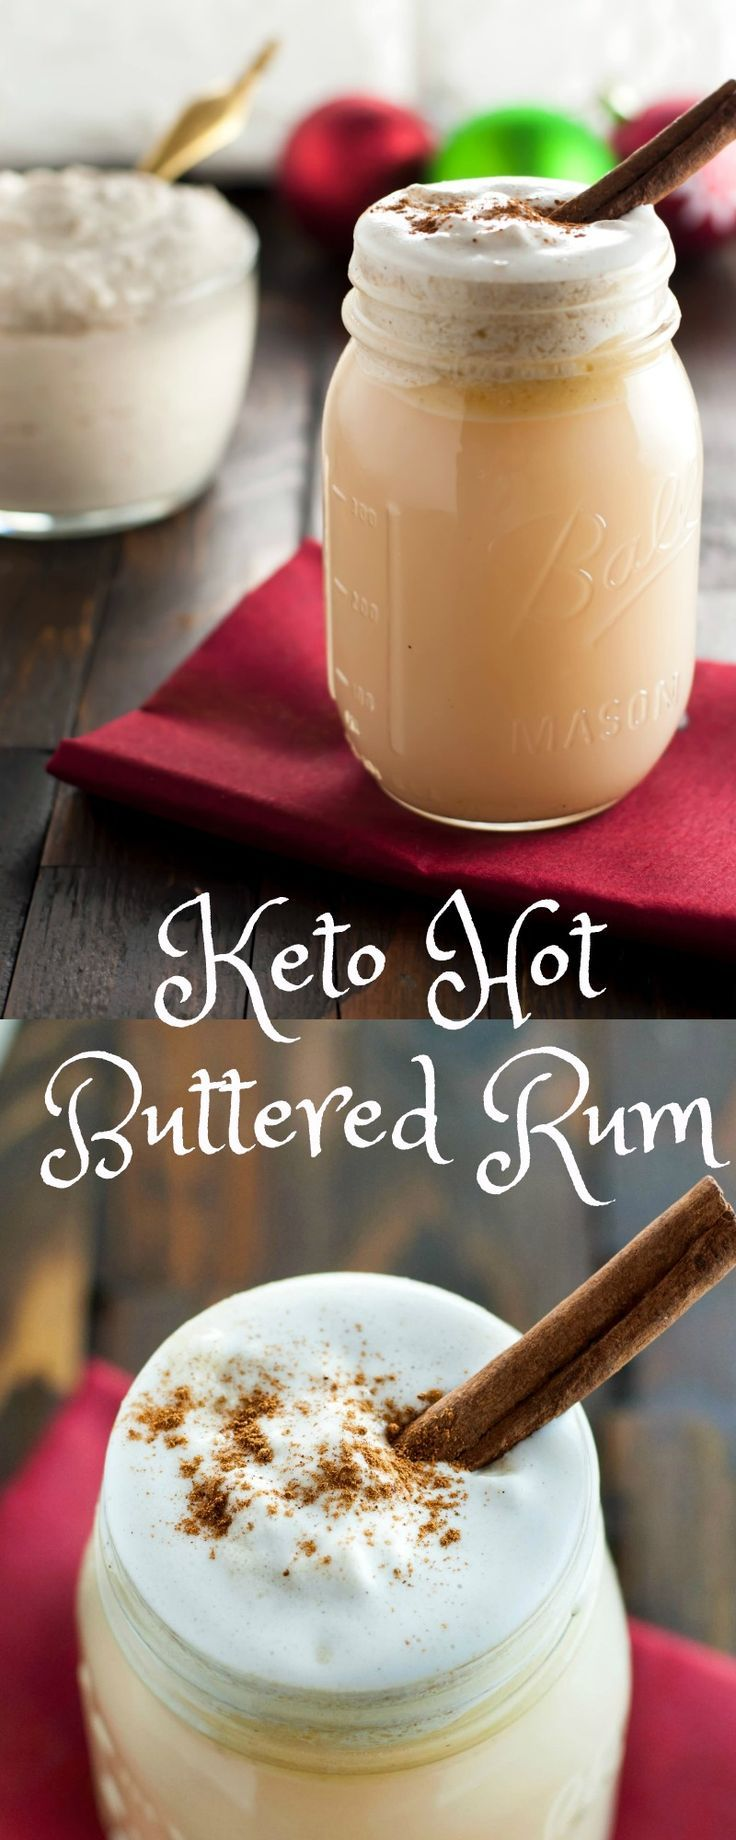 Keto Hot Buttered Rum - Low Carb, Gluten Free | Peace Love and Low Carb  via @PeaceLoveLoCarb